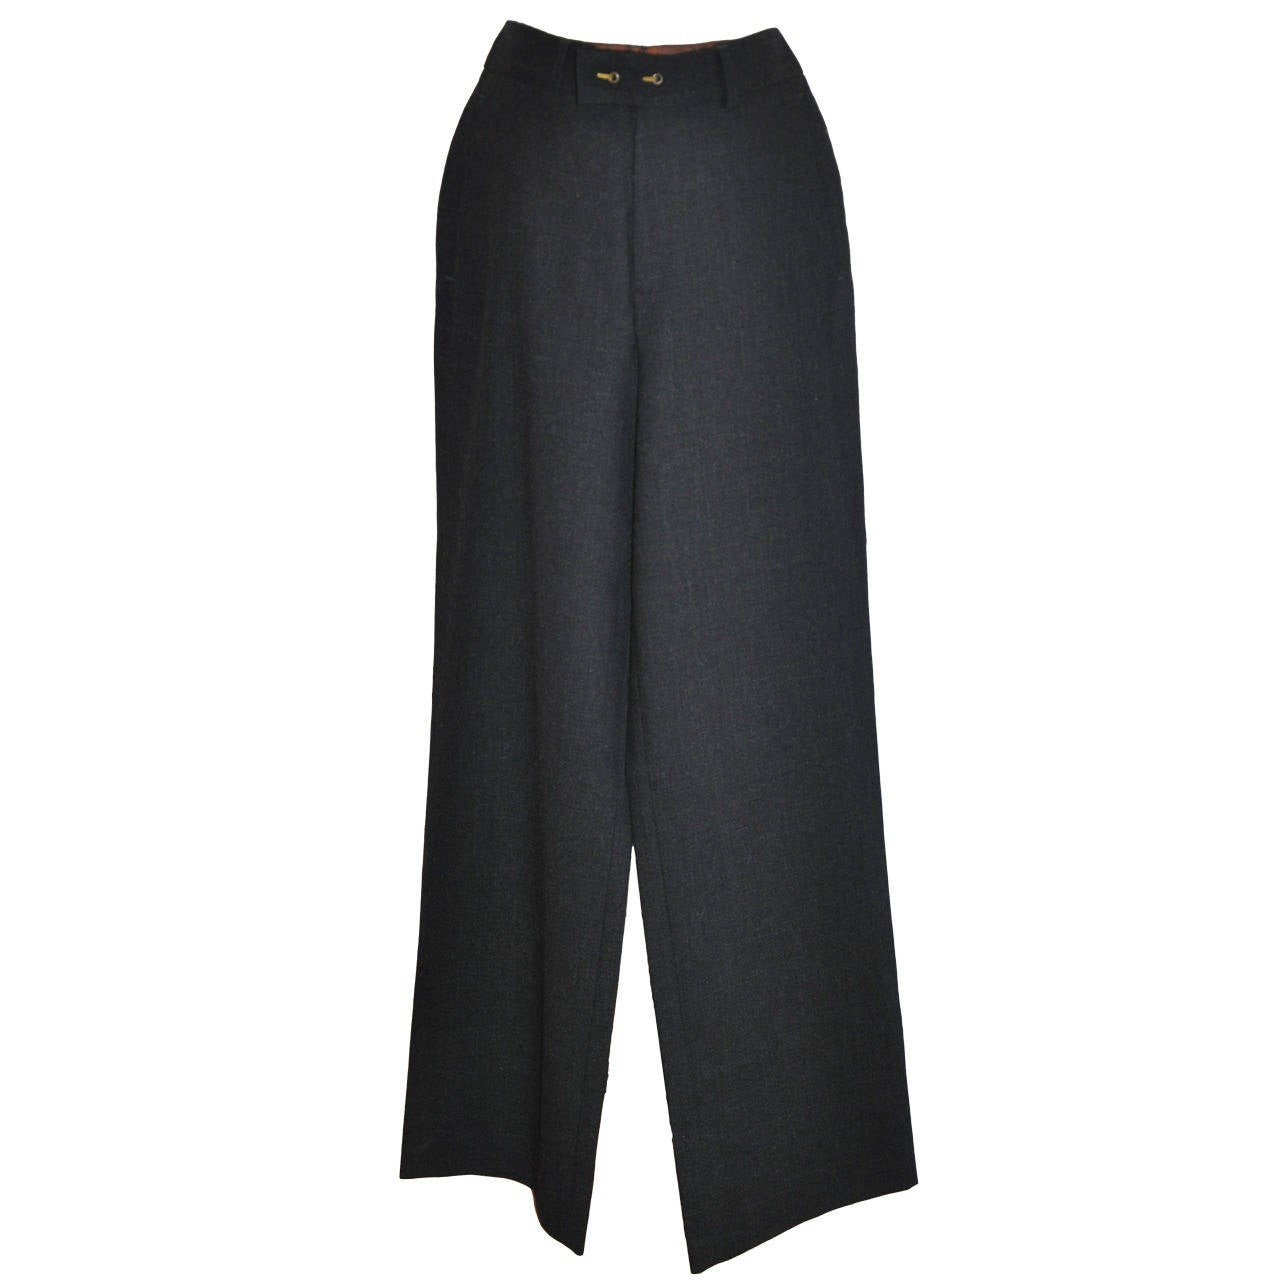 "Jean Paul Gaultier ""Classique"" Charcoal/Black Slim Trouser 1"